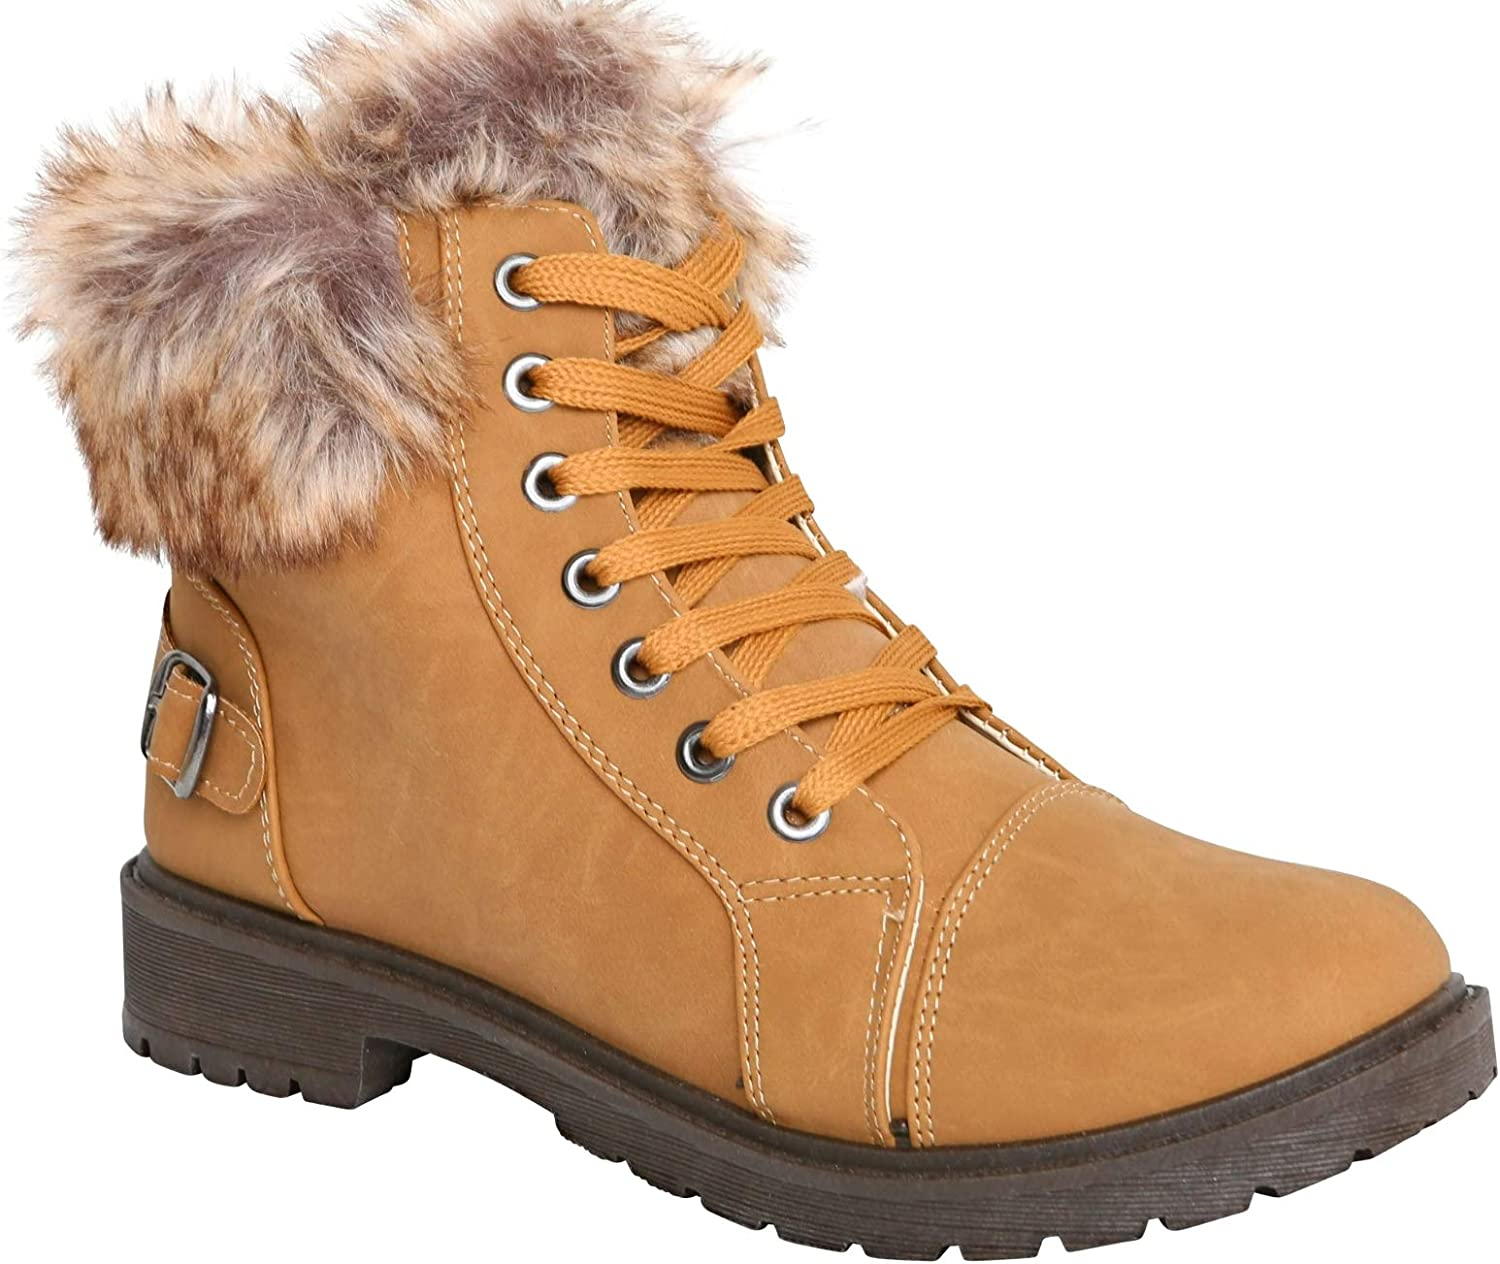 LADIES CAMEL LACE-UP DESERT WARM FLEECE LINED COMFY ANKLE BOOTS SHOES SIZES 3-8